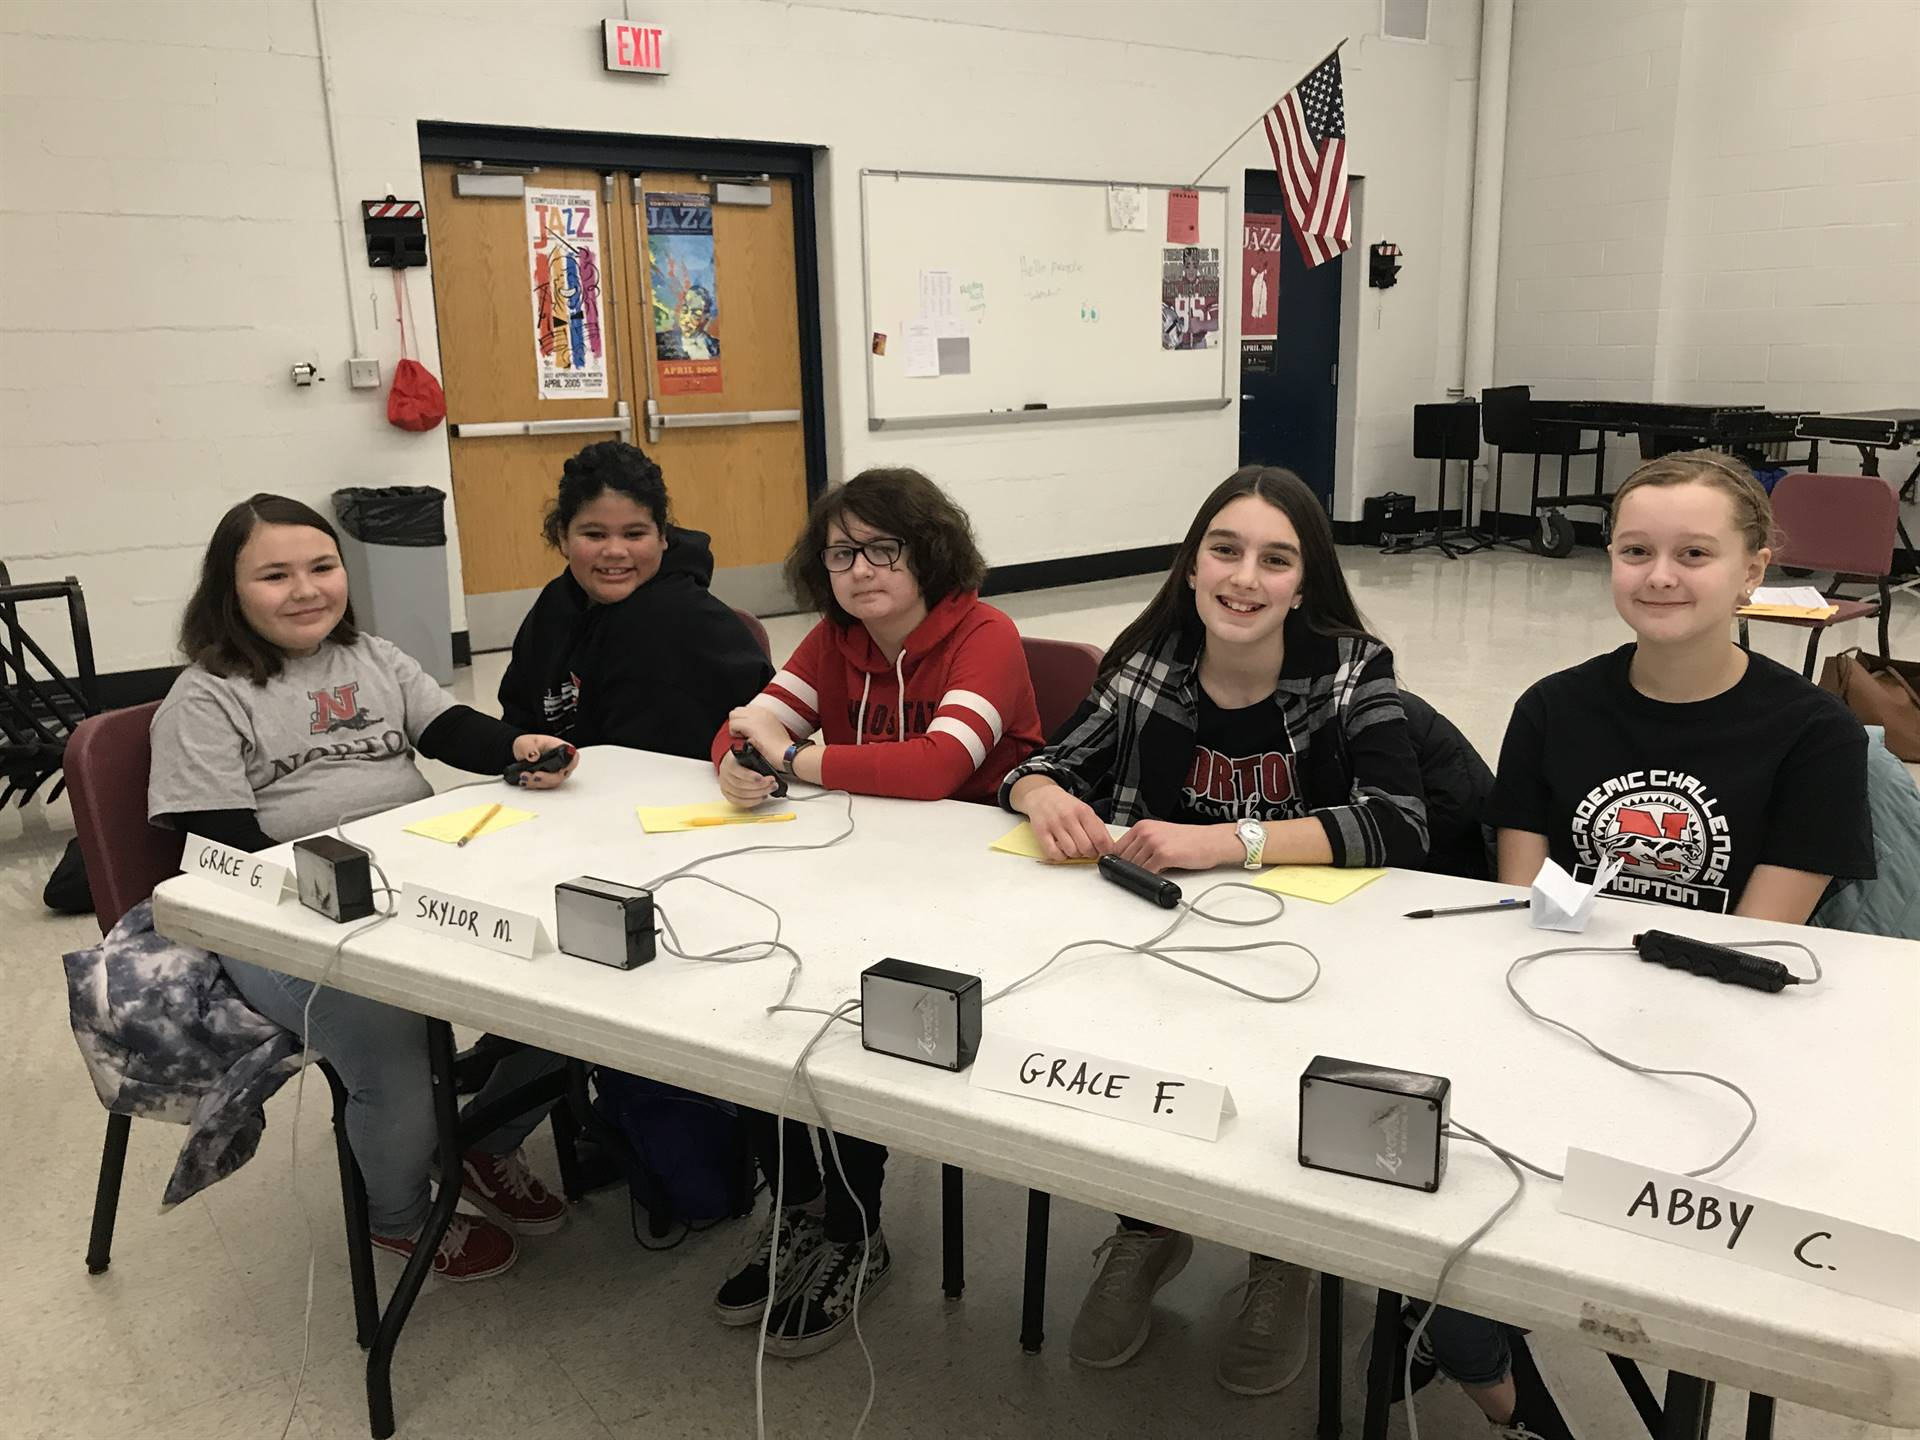 Our Academic Challenge Team ready to compete!